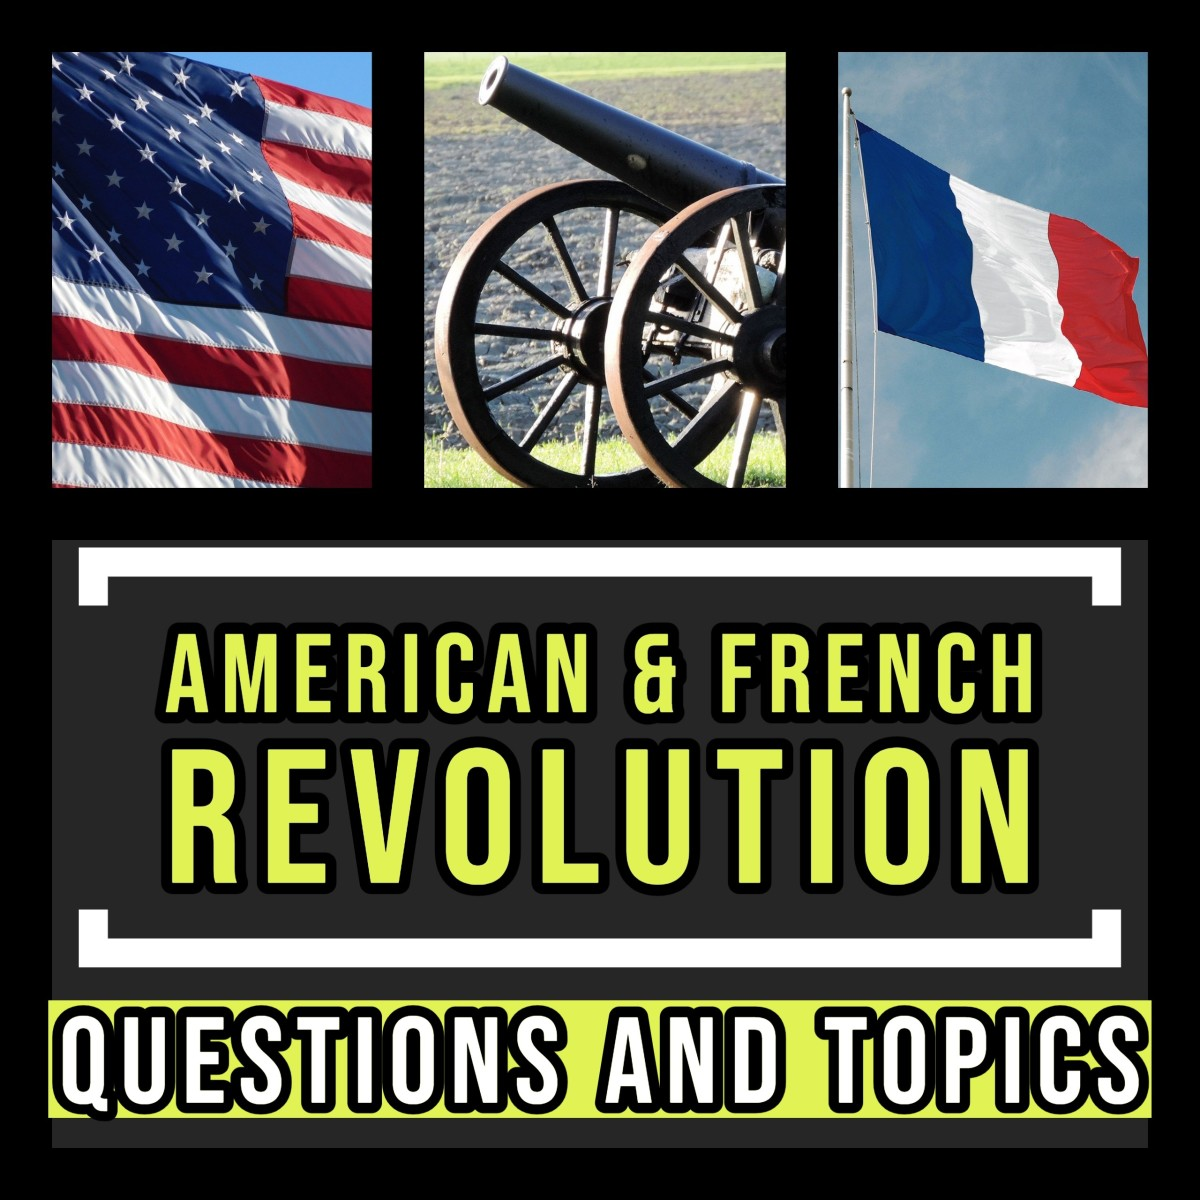 American and French Revolution history topics and questions.